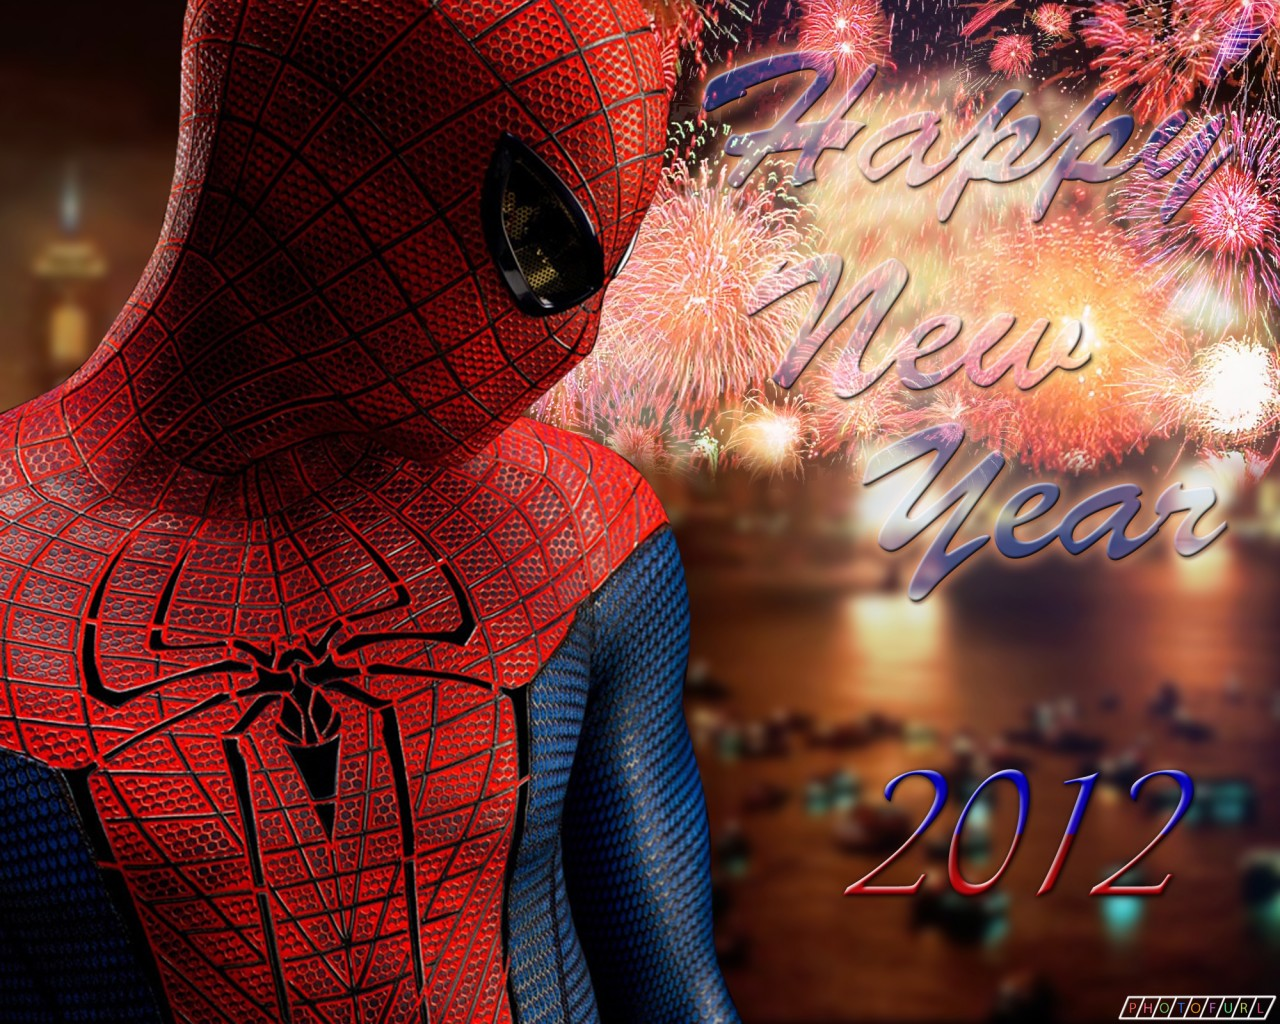 http://4.bp.blogspot.com/-mbi8DNlX5i4/TseEBhPkx7I/AAAAAAAAAqk/tZojMo5o6sY/s1600/2012-new-year-wallpaper-free-download.jpg